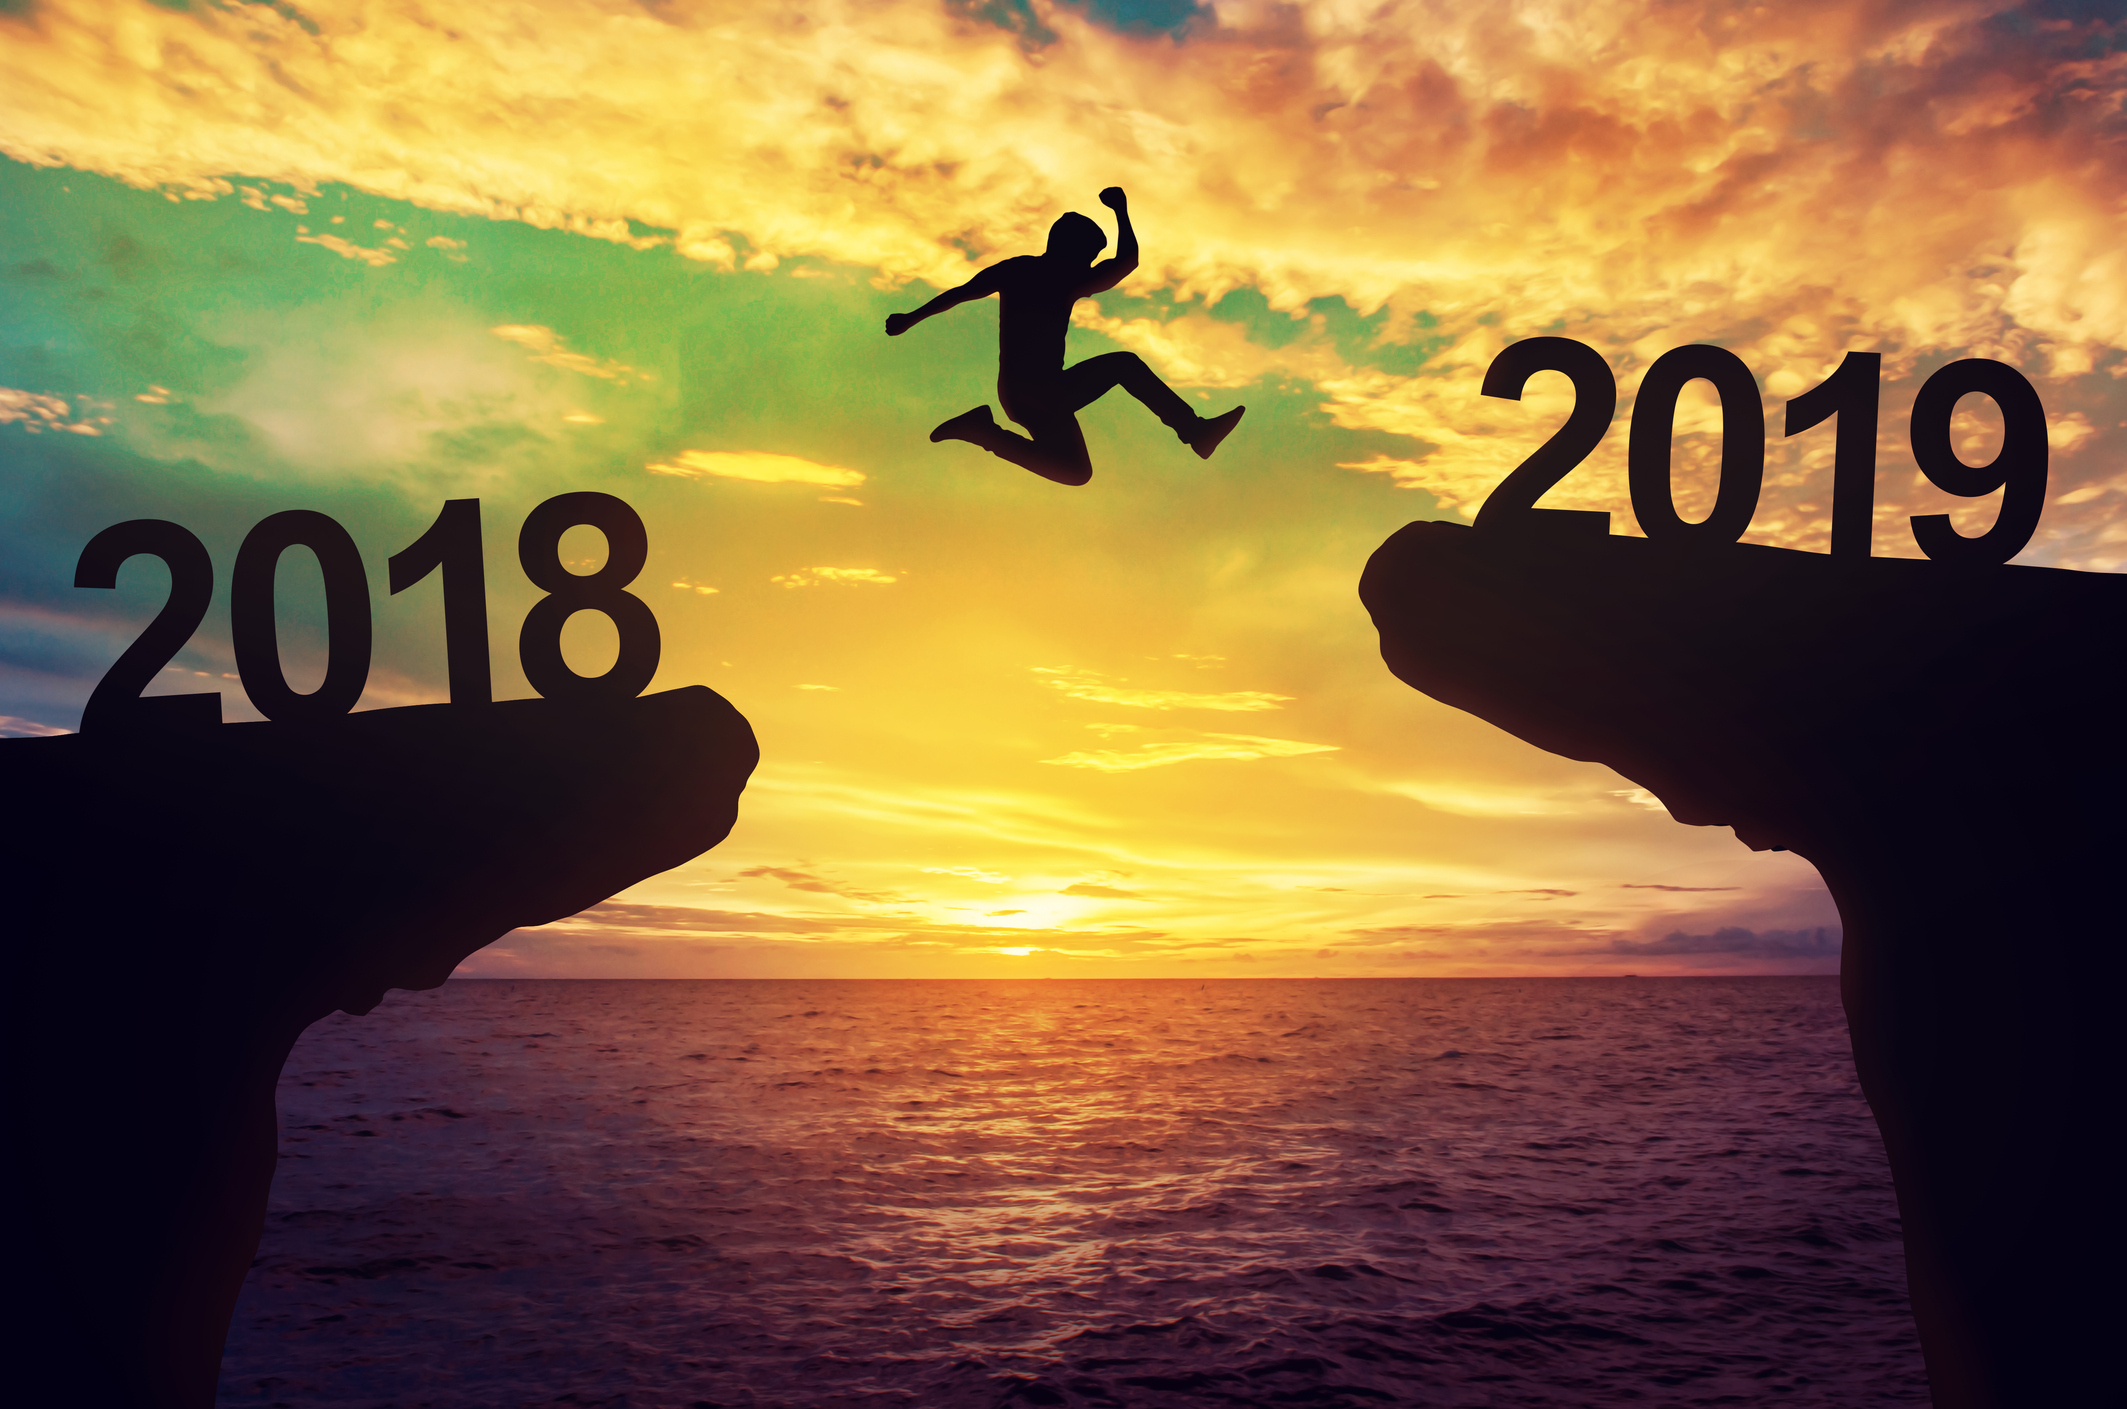 2018 to 2019 jump